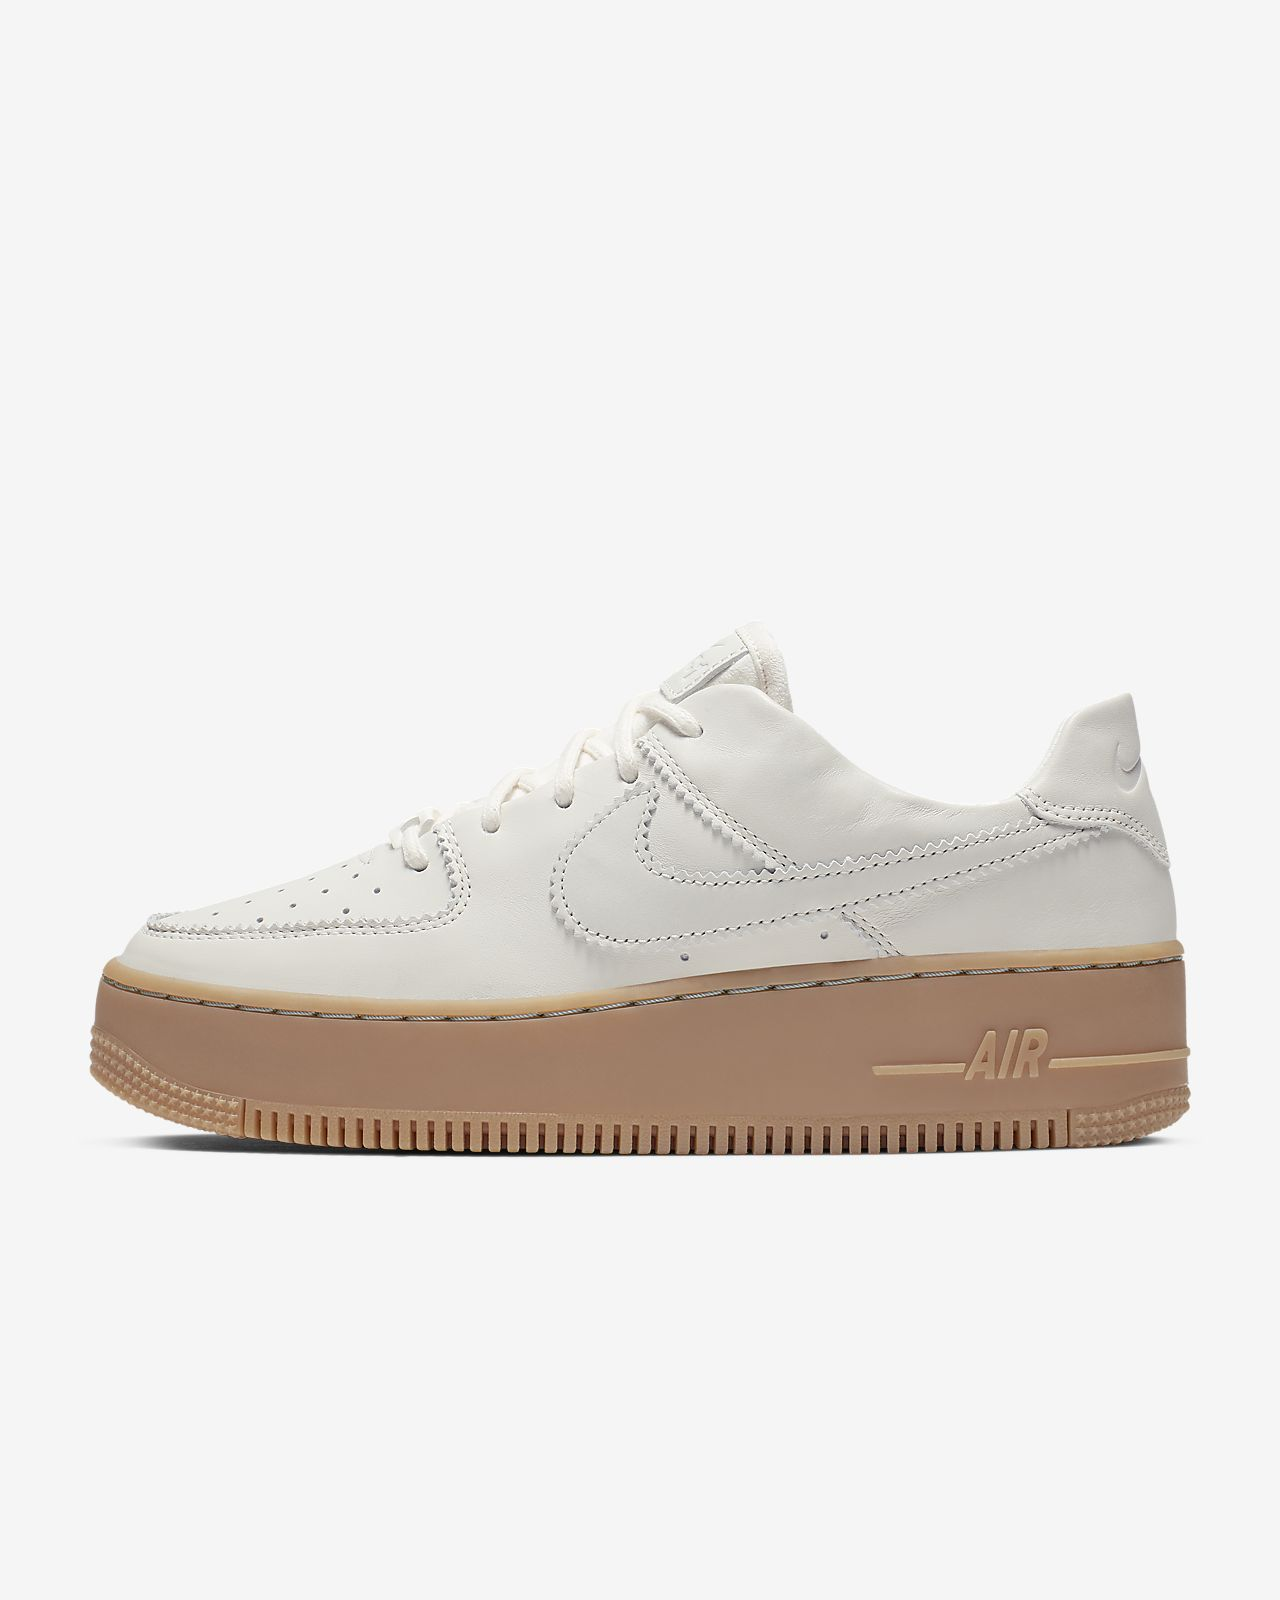 aa7ec3111d94 Nike Air Force 1 Sage Low LX Women s Shoe. Nike.com GB